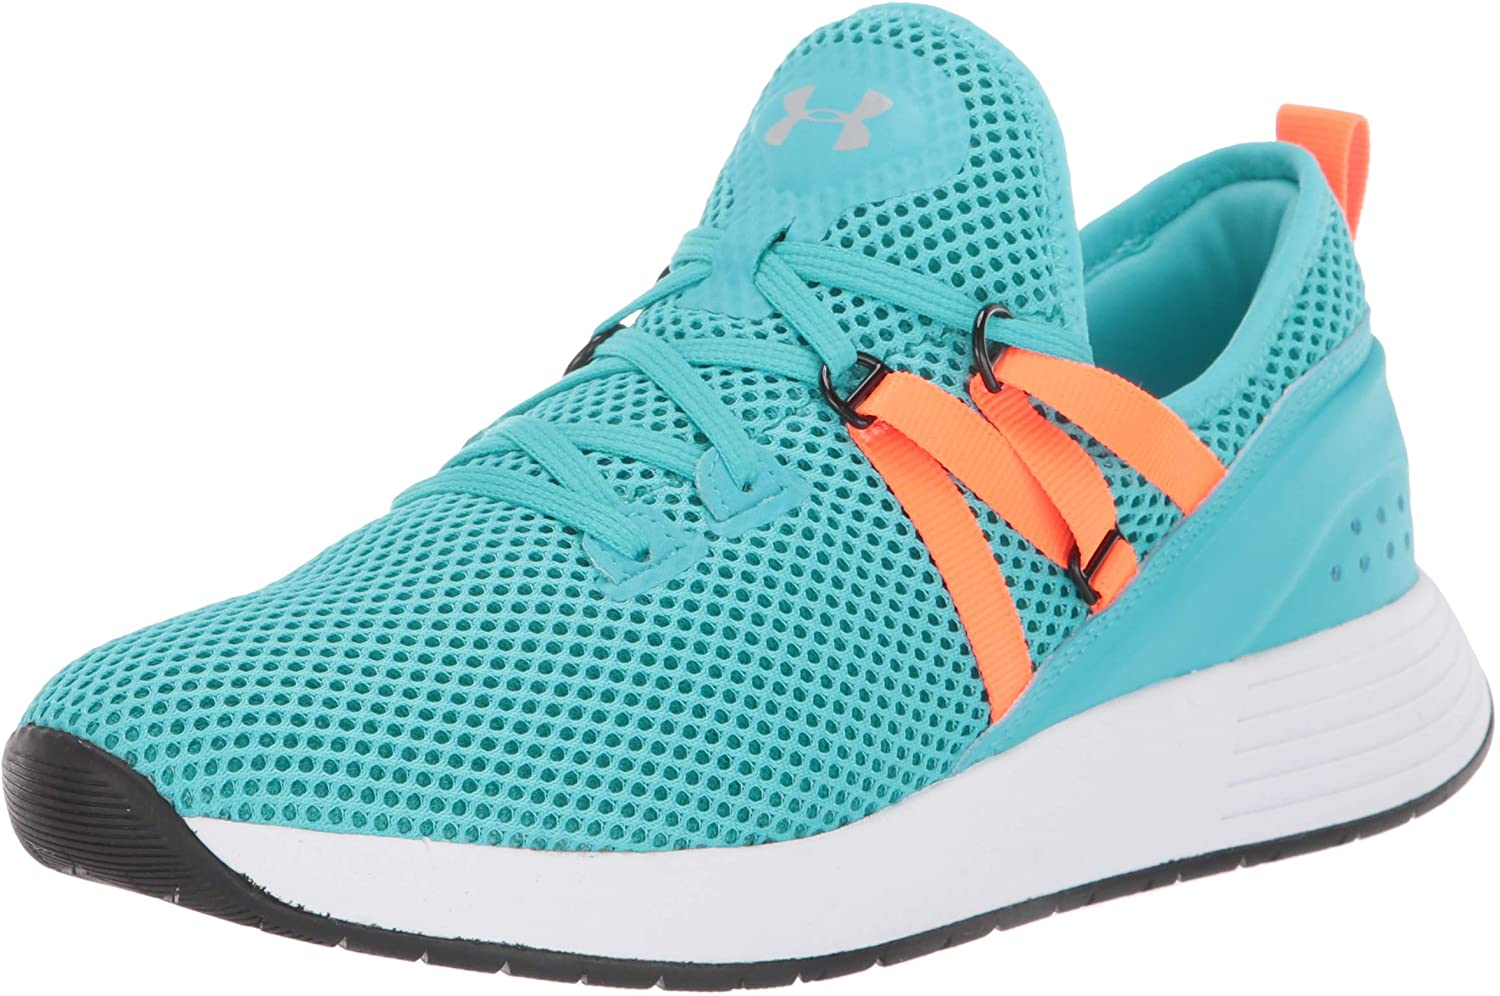 Under Armour Womens Breathe Trainer X Nm Cross